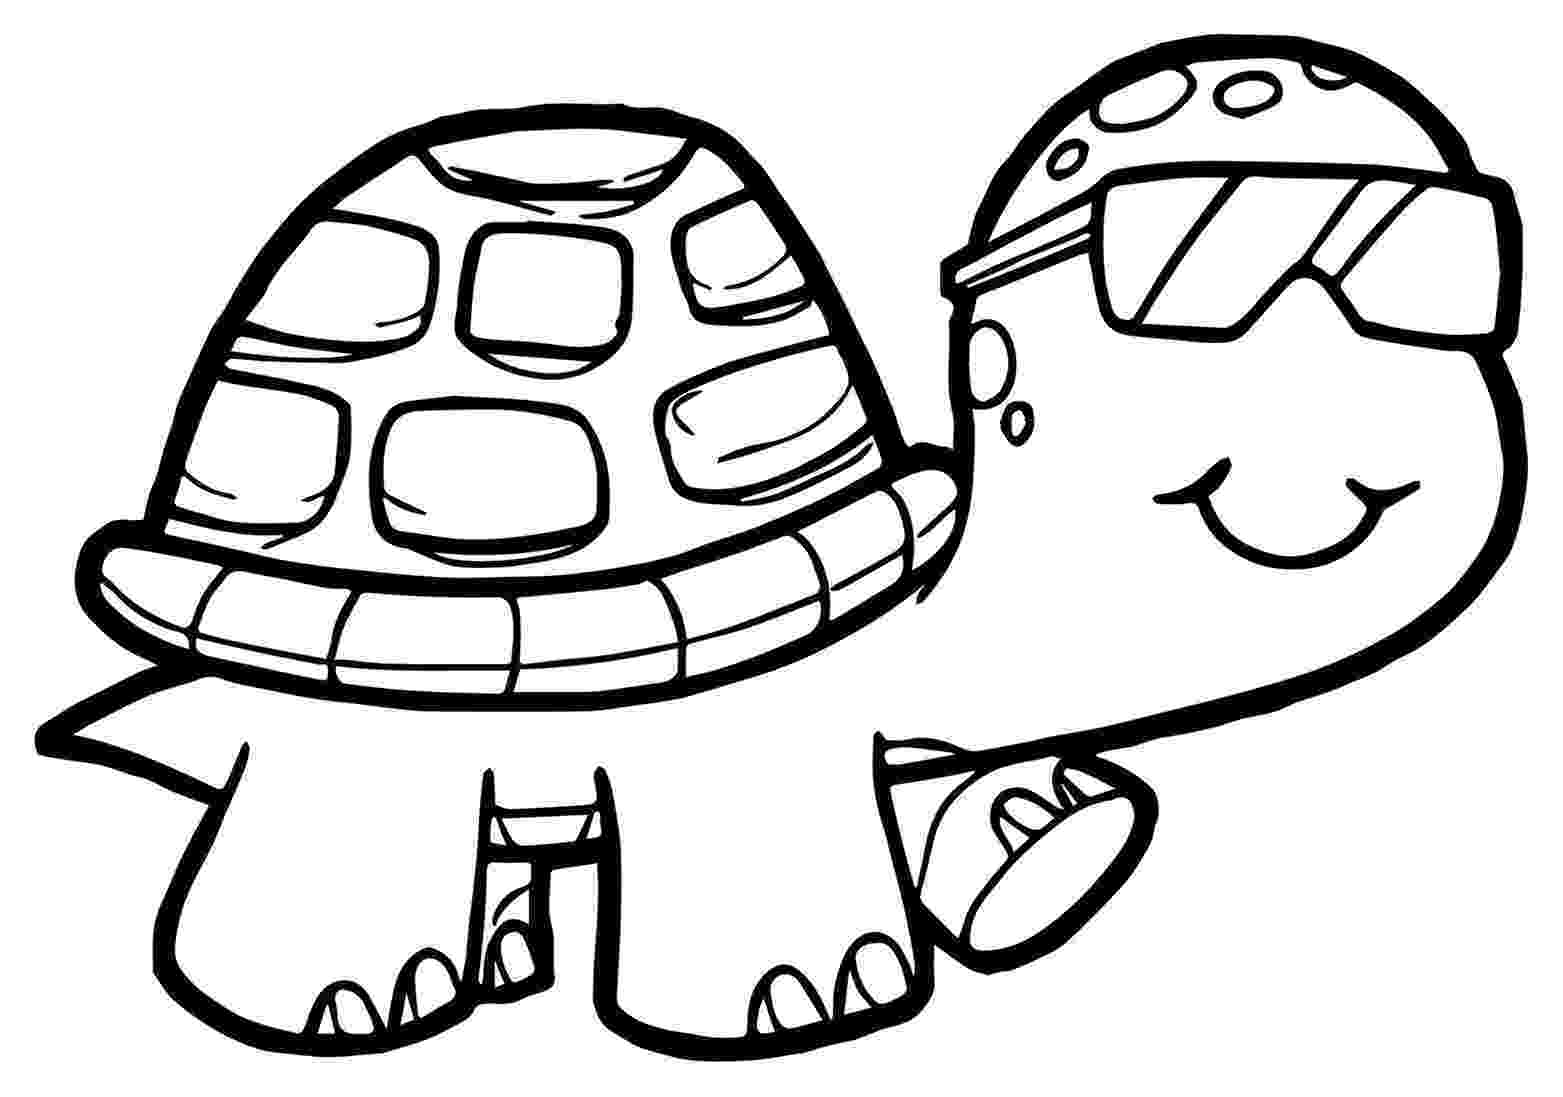 turtle pictures to color turtles free to color for kids turtles kids coloring pages pictures color turtle to